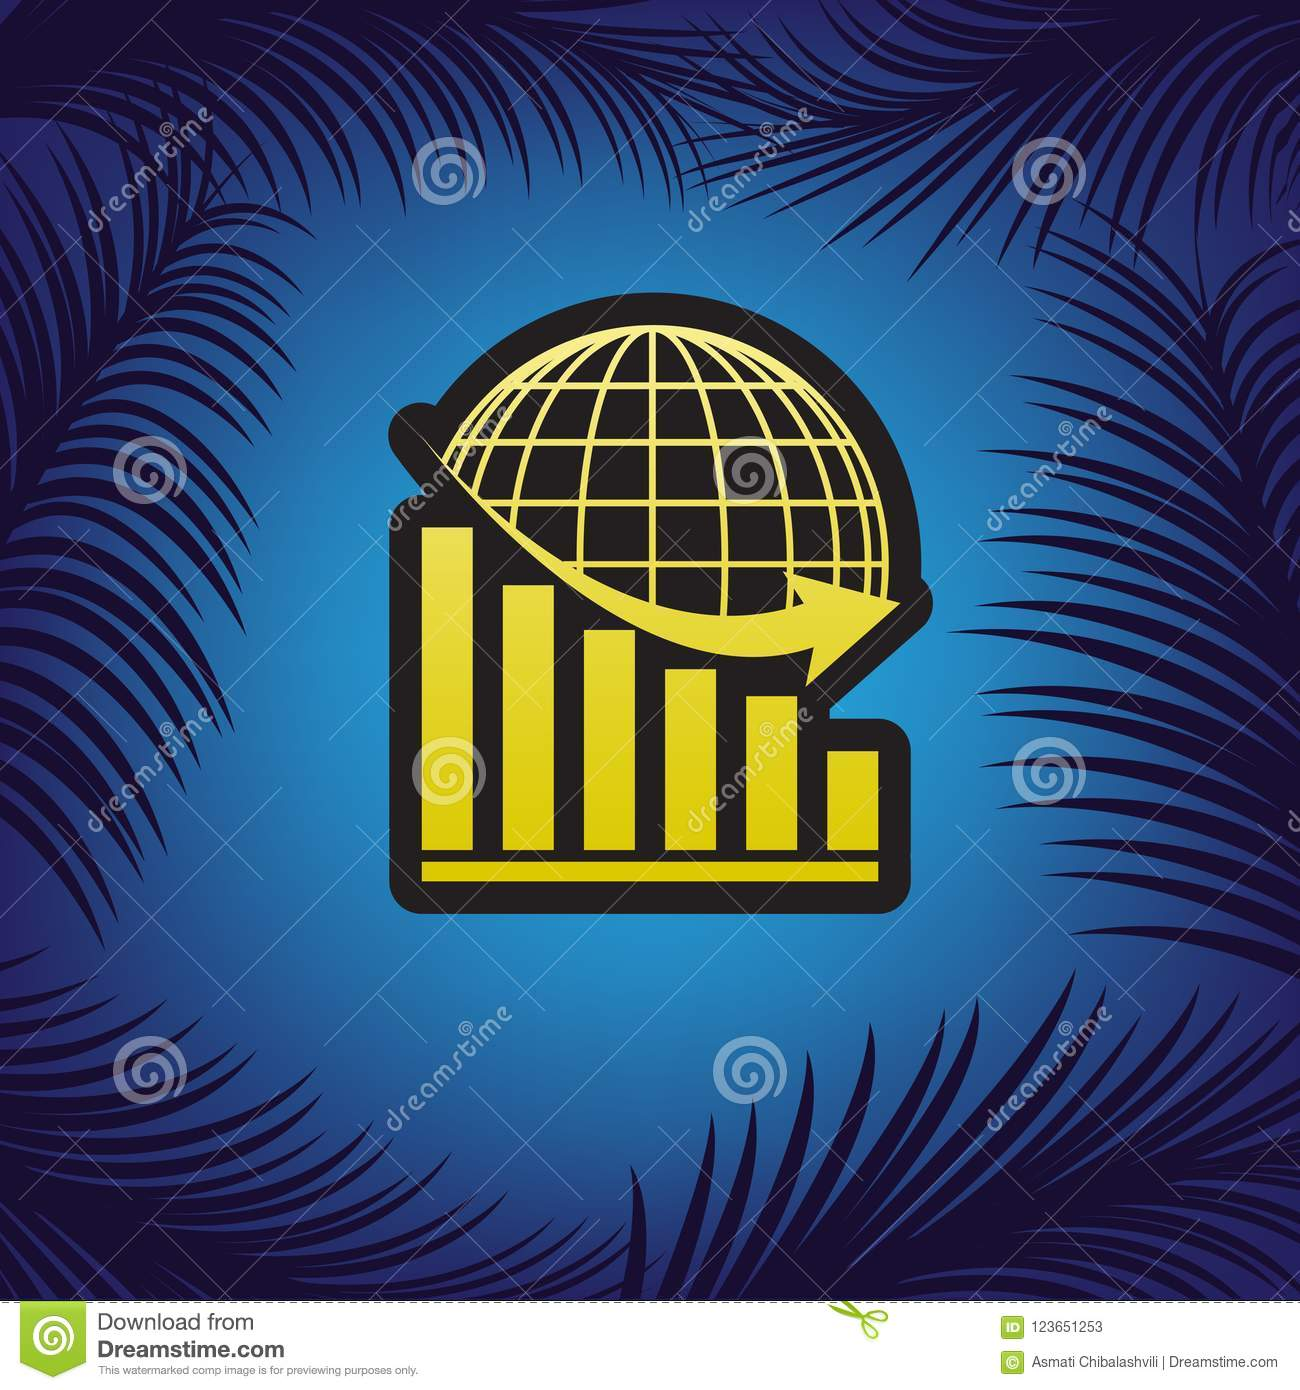 Declining graph with earth. Vector. Golden icon with black contour at blue background with branches of palm trees.. Illustration.